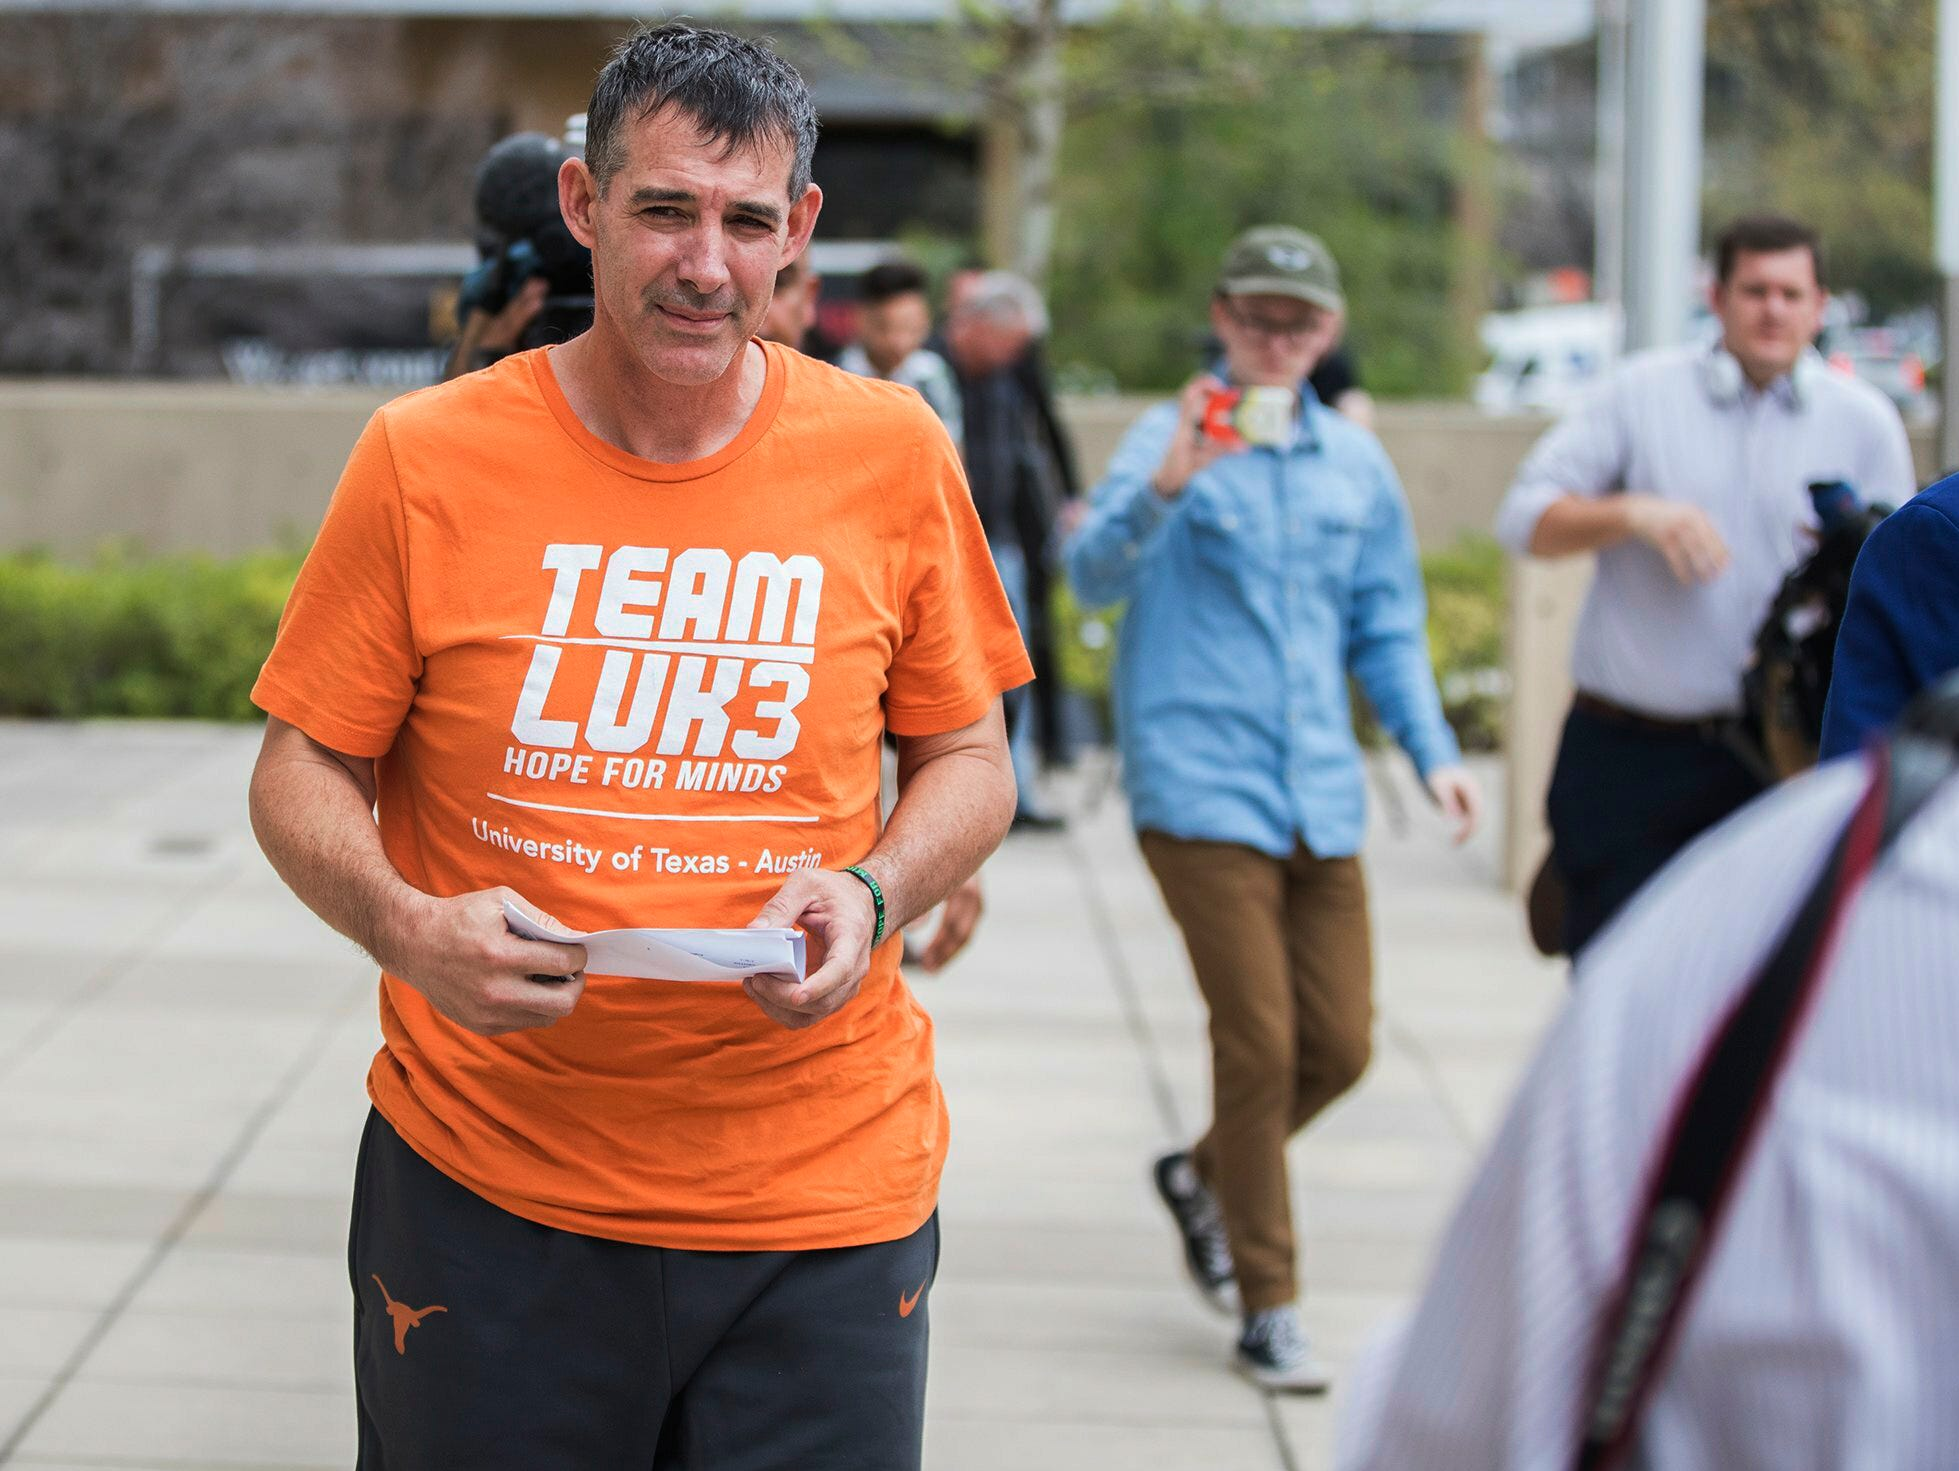 Texas men's tennis coach Michael Center walks away from the United States Federal Courthouse in Austin, Texas, on March 12, 2019. Center is among a few people in the state charged in a scheme that involved wealthy parents bribing college coaches and others to gain admissions for their children at top schools, federal prosecutors said.